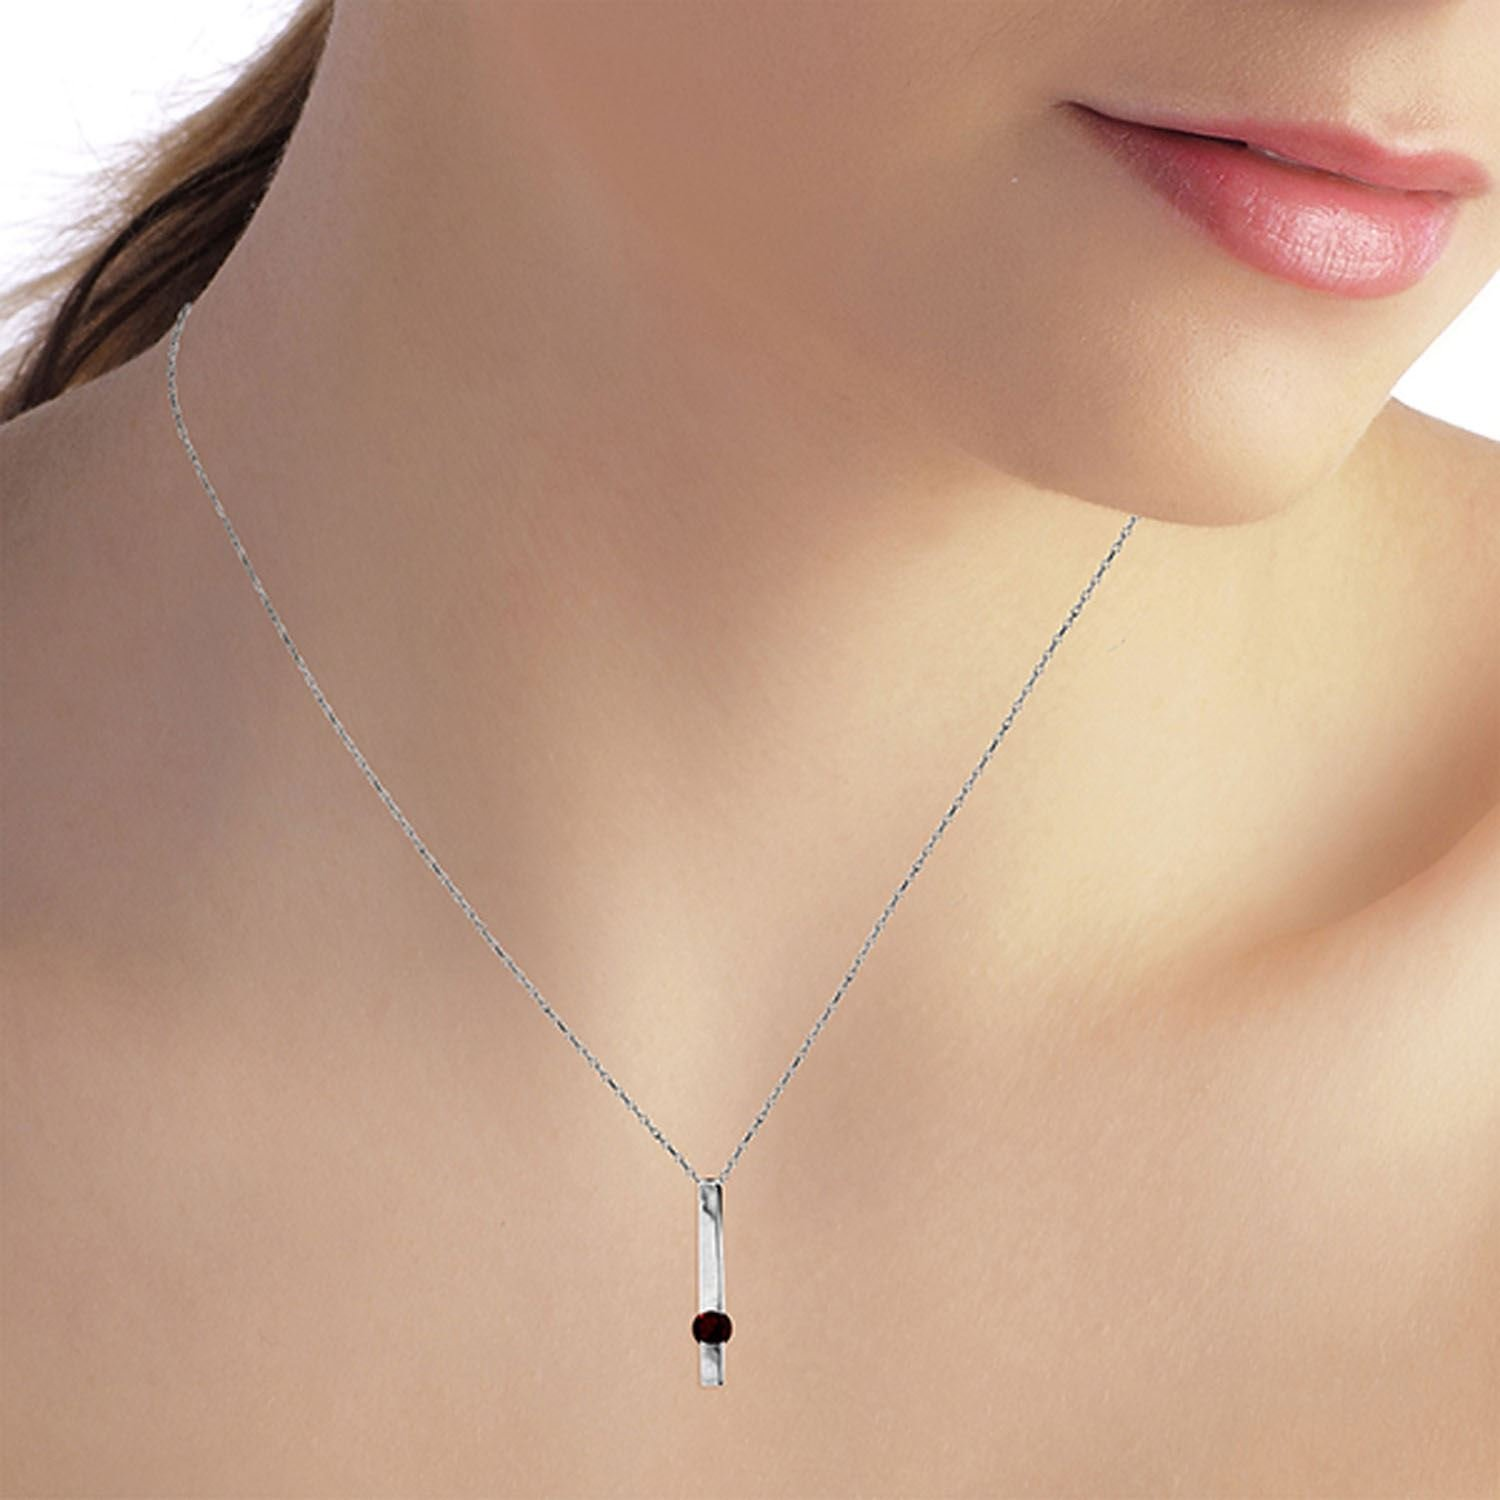 ALARRI 0.25 Carat 14K Solid White Gold Desire Inherently Garnet Necklace with 18 Inch Chain Length